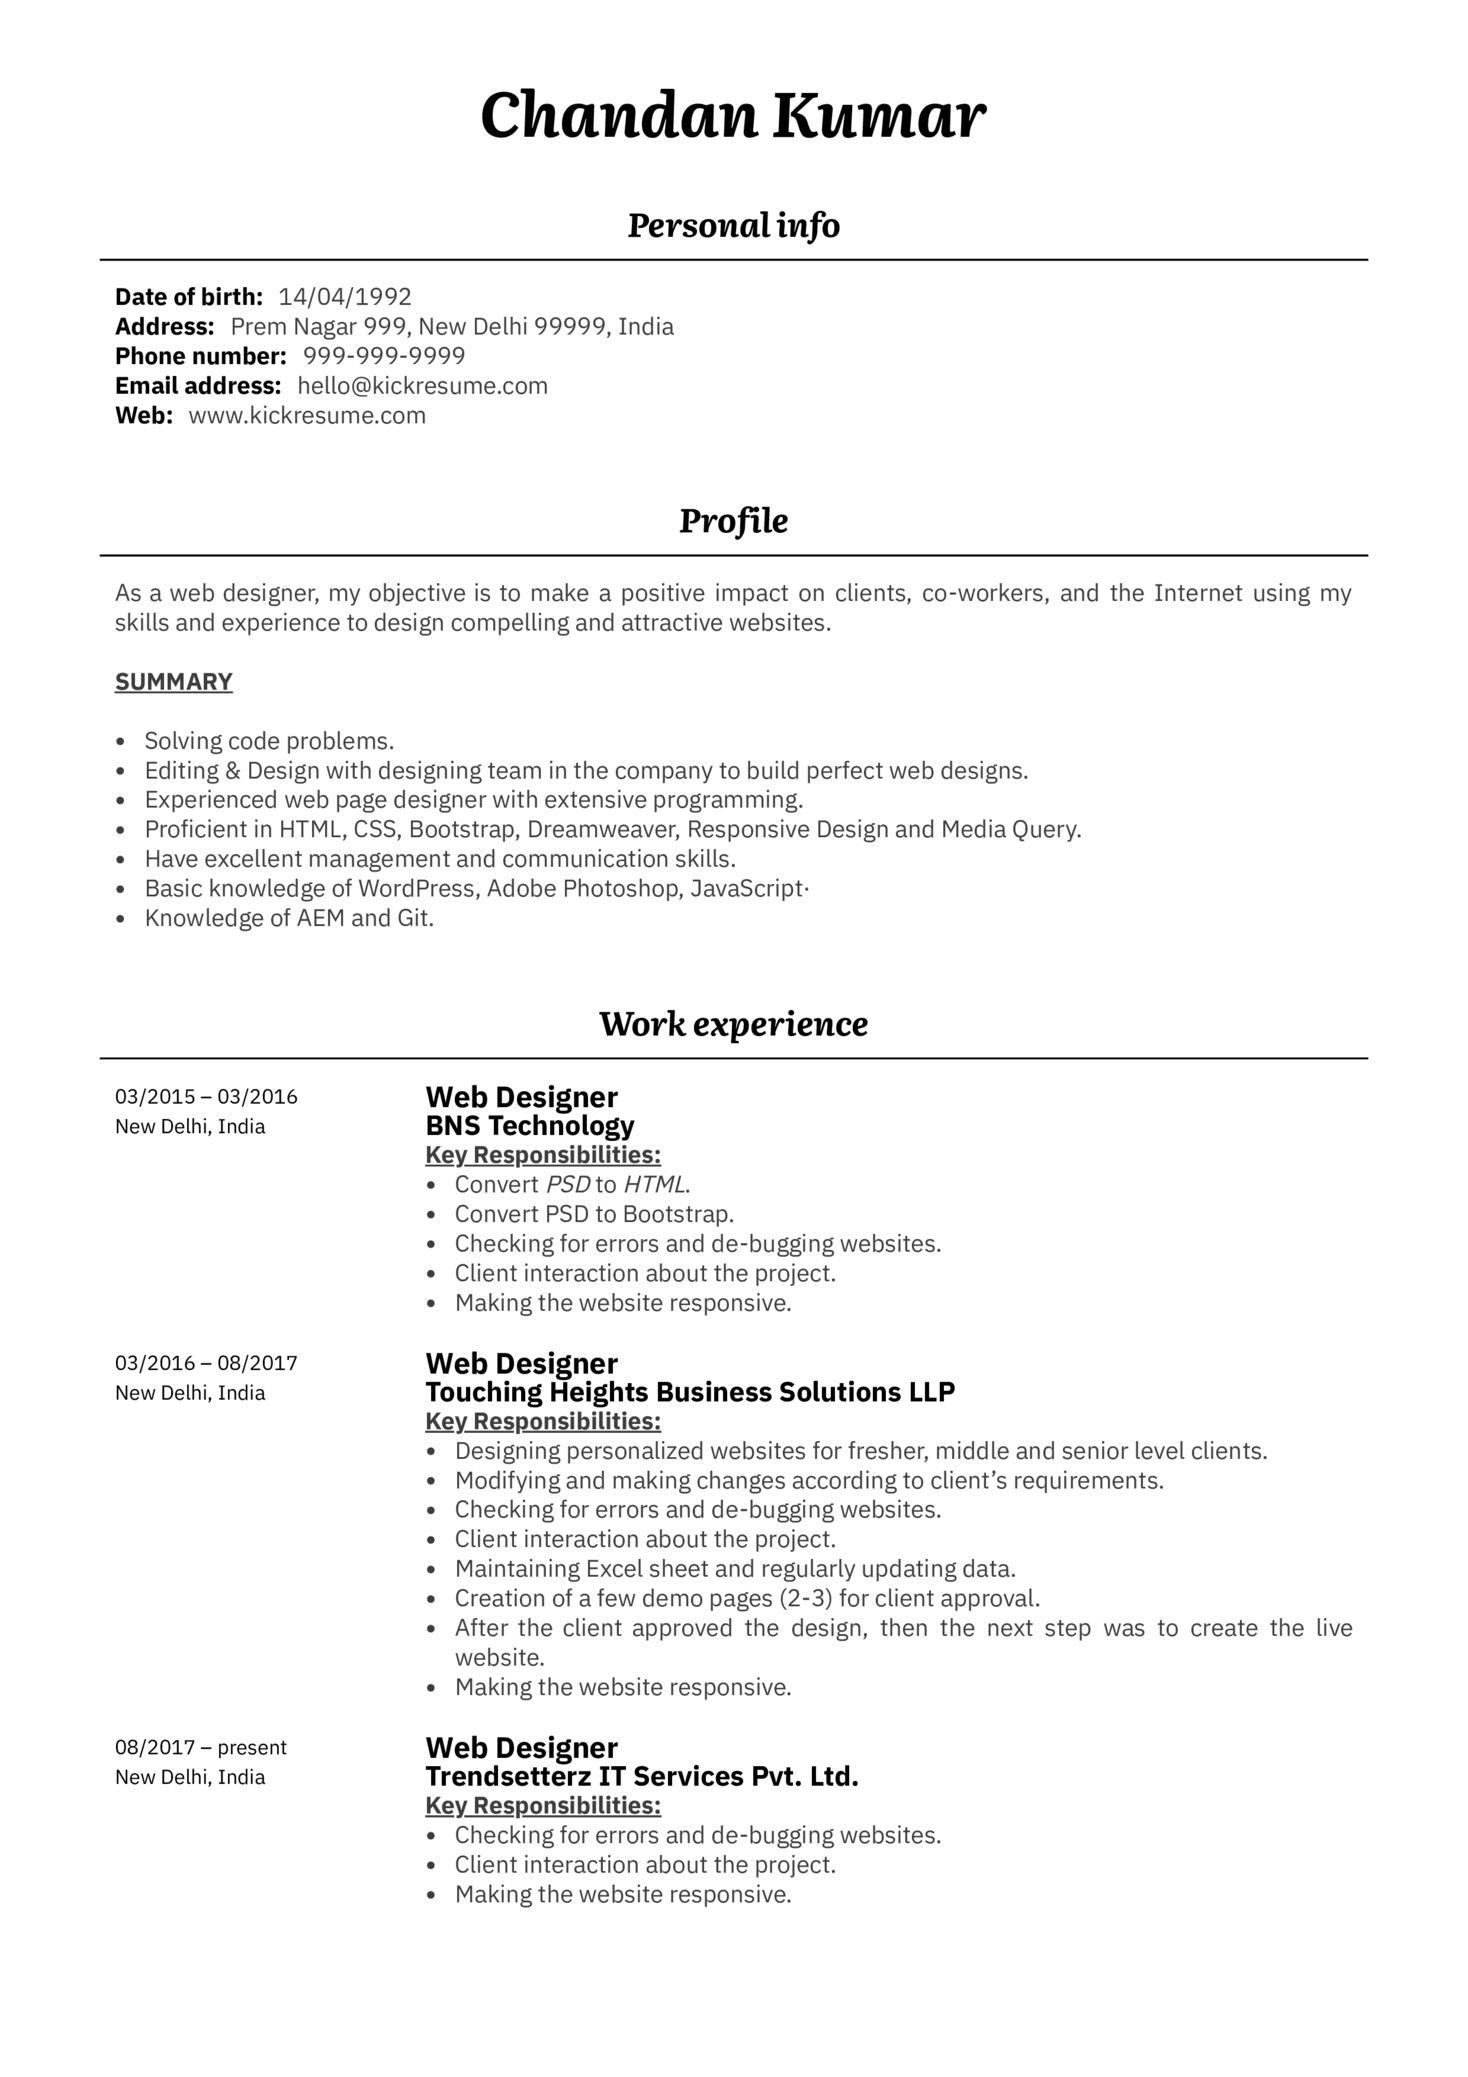 Resume Examples By Real People Web Designer At Trendsetterz Resume